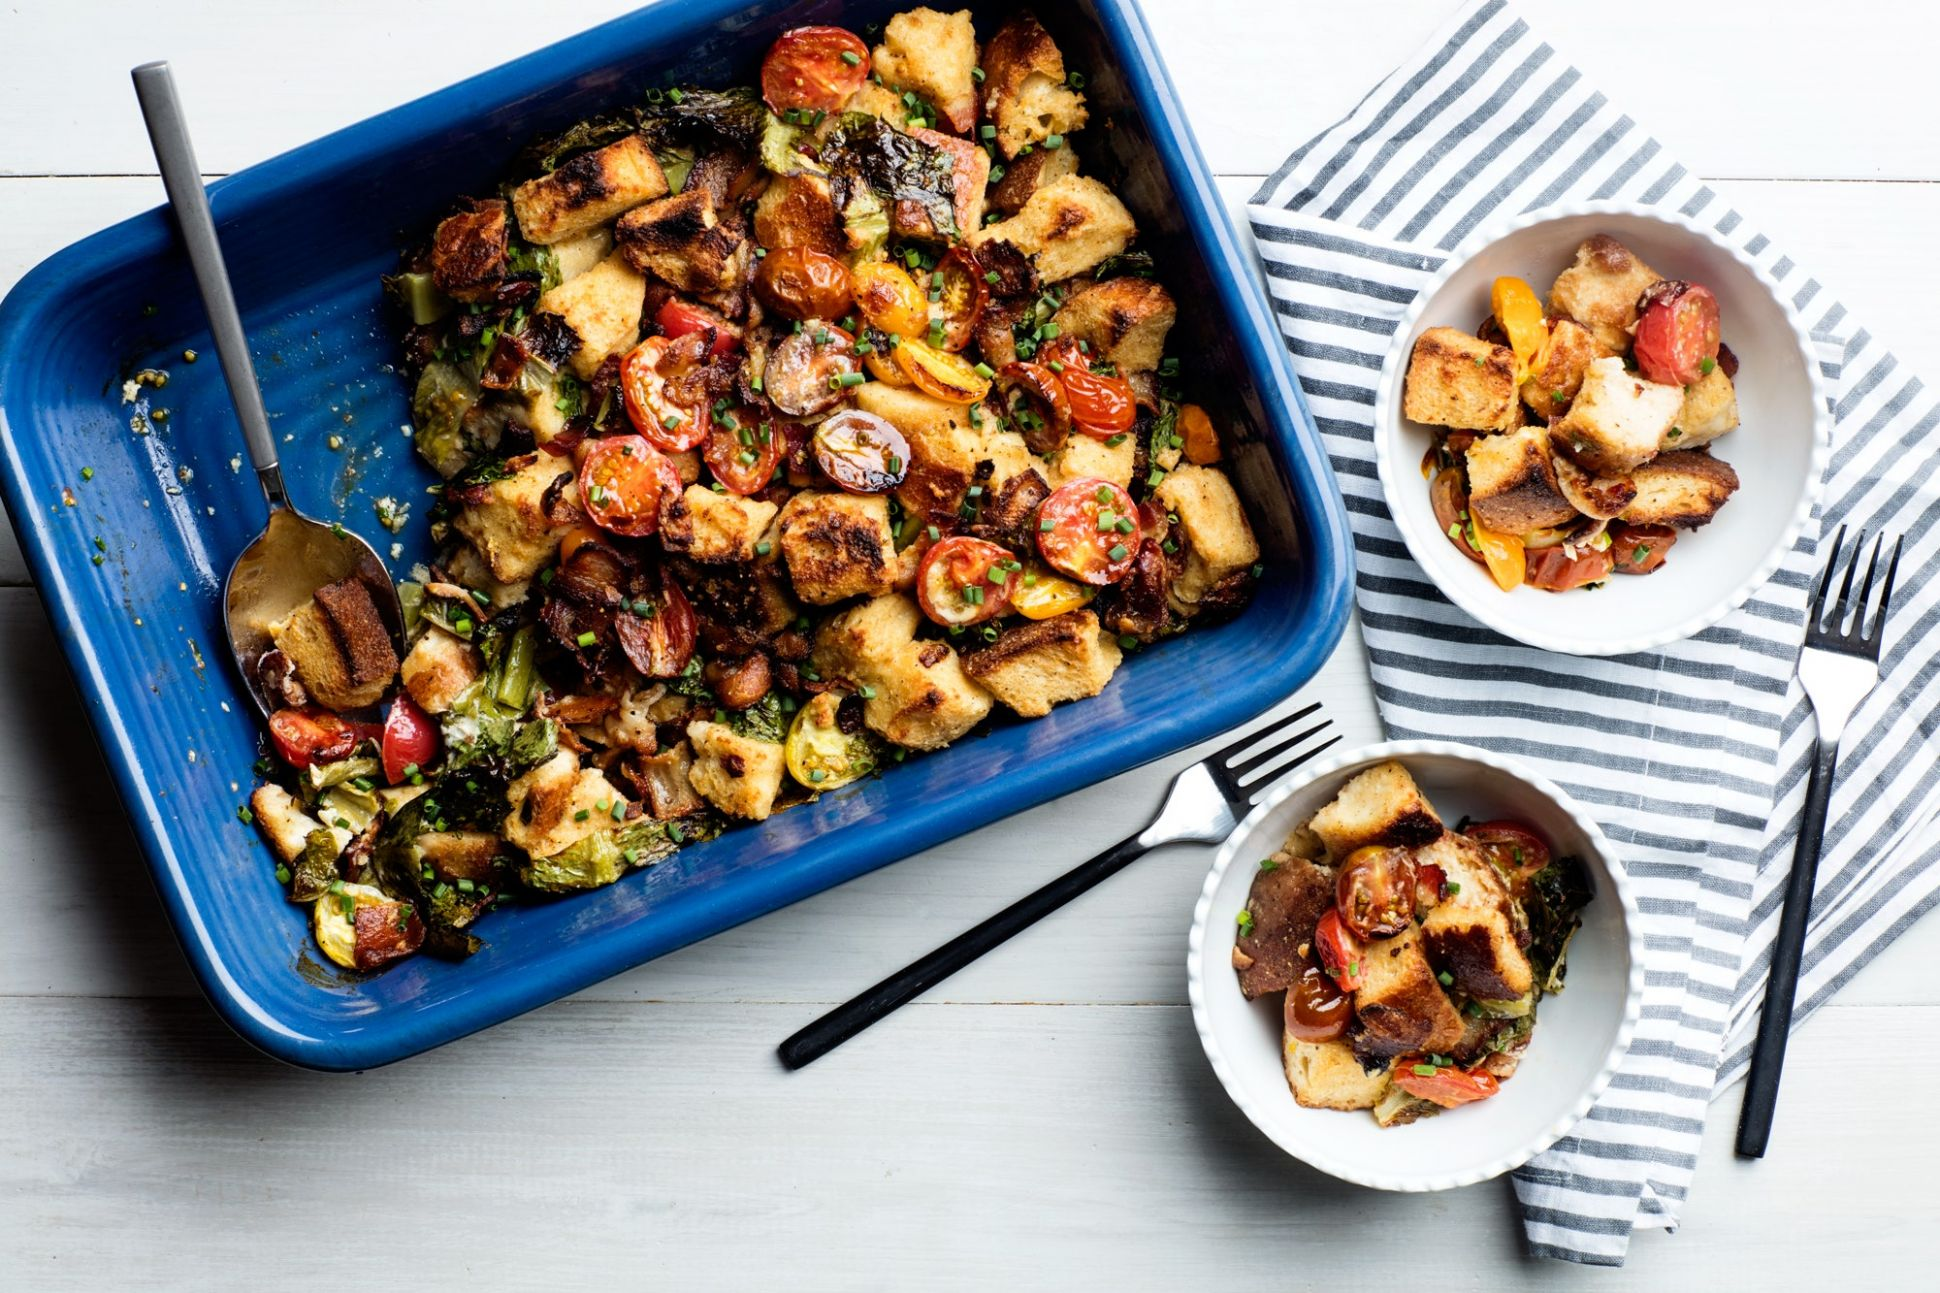 8 Easy and Hearty Casserole Recipes | Epicurious